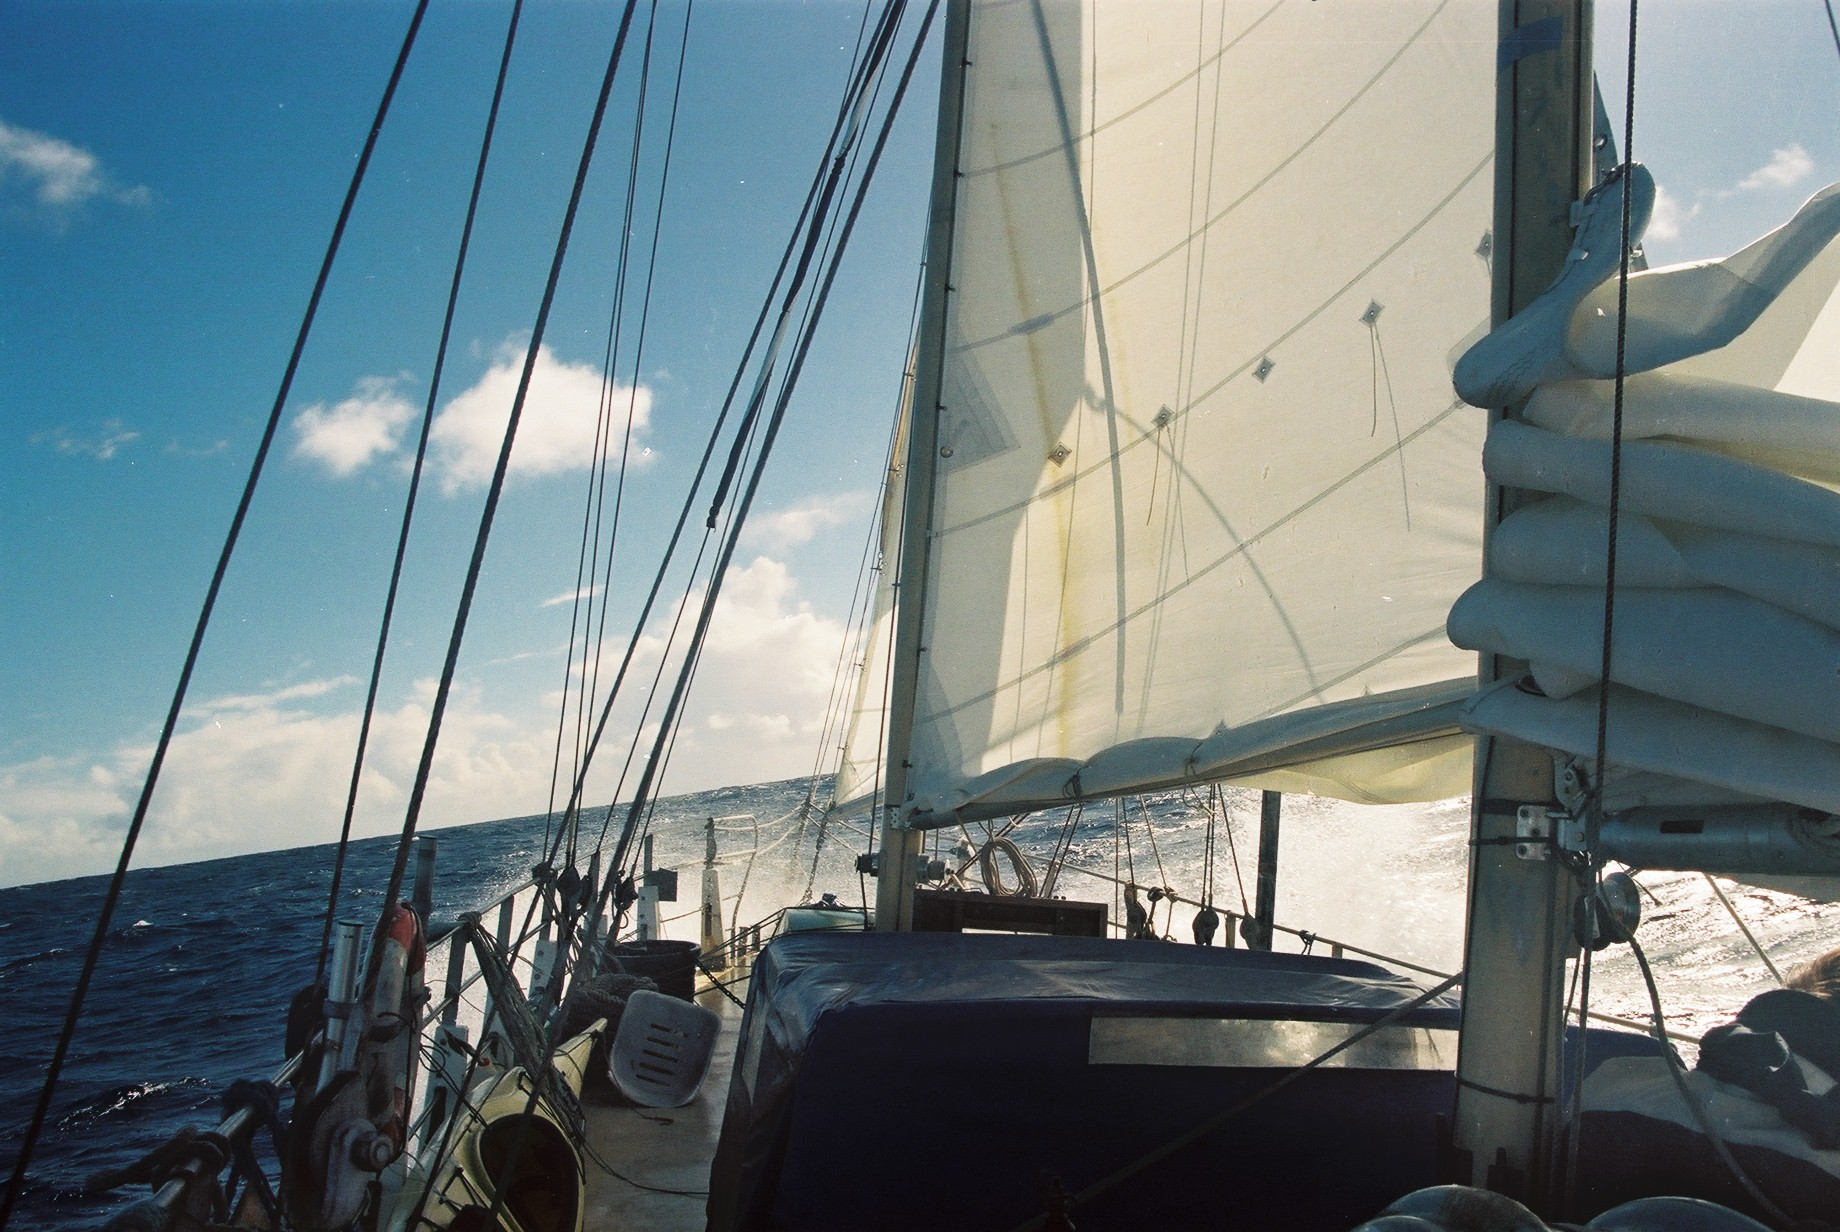 My boat, Salka Valka, in the middle of the Atlantic